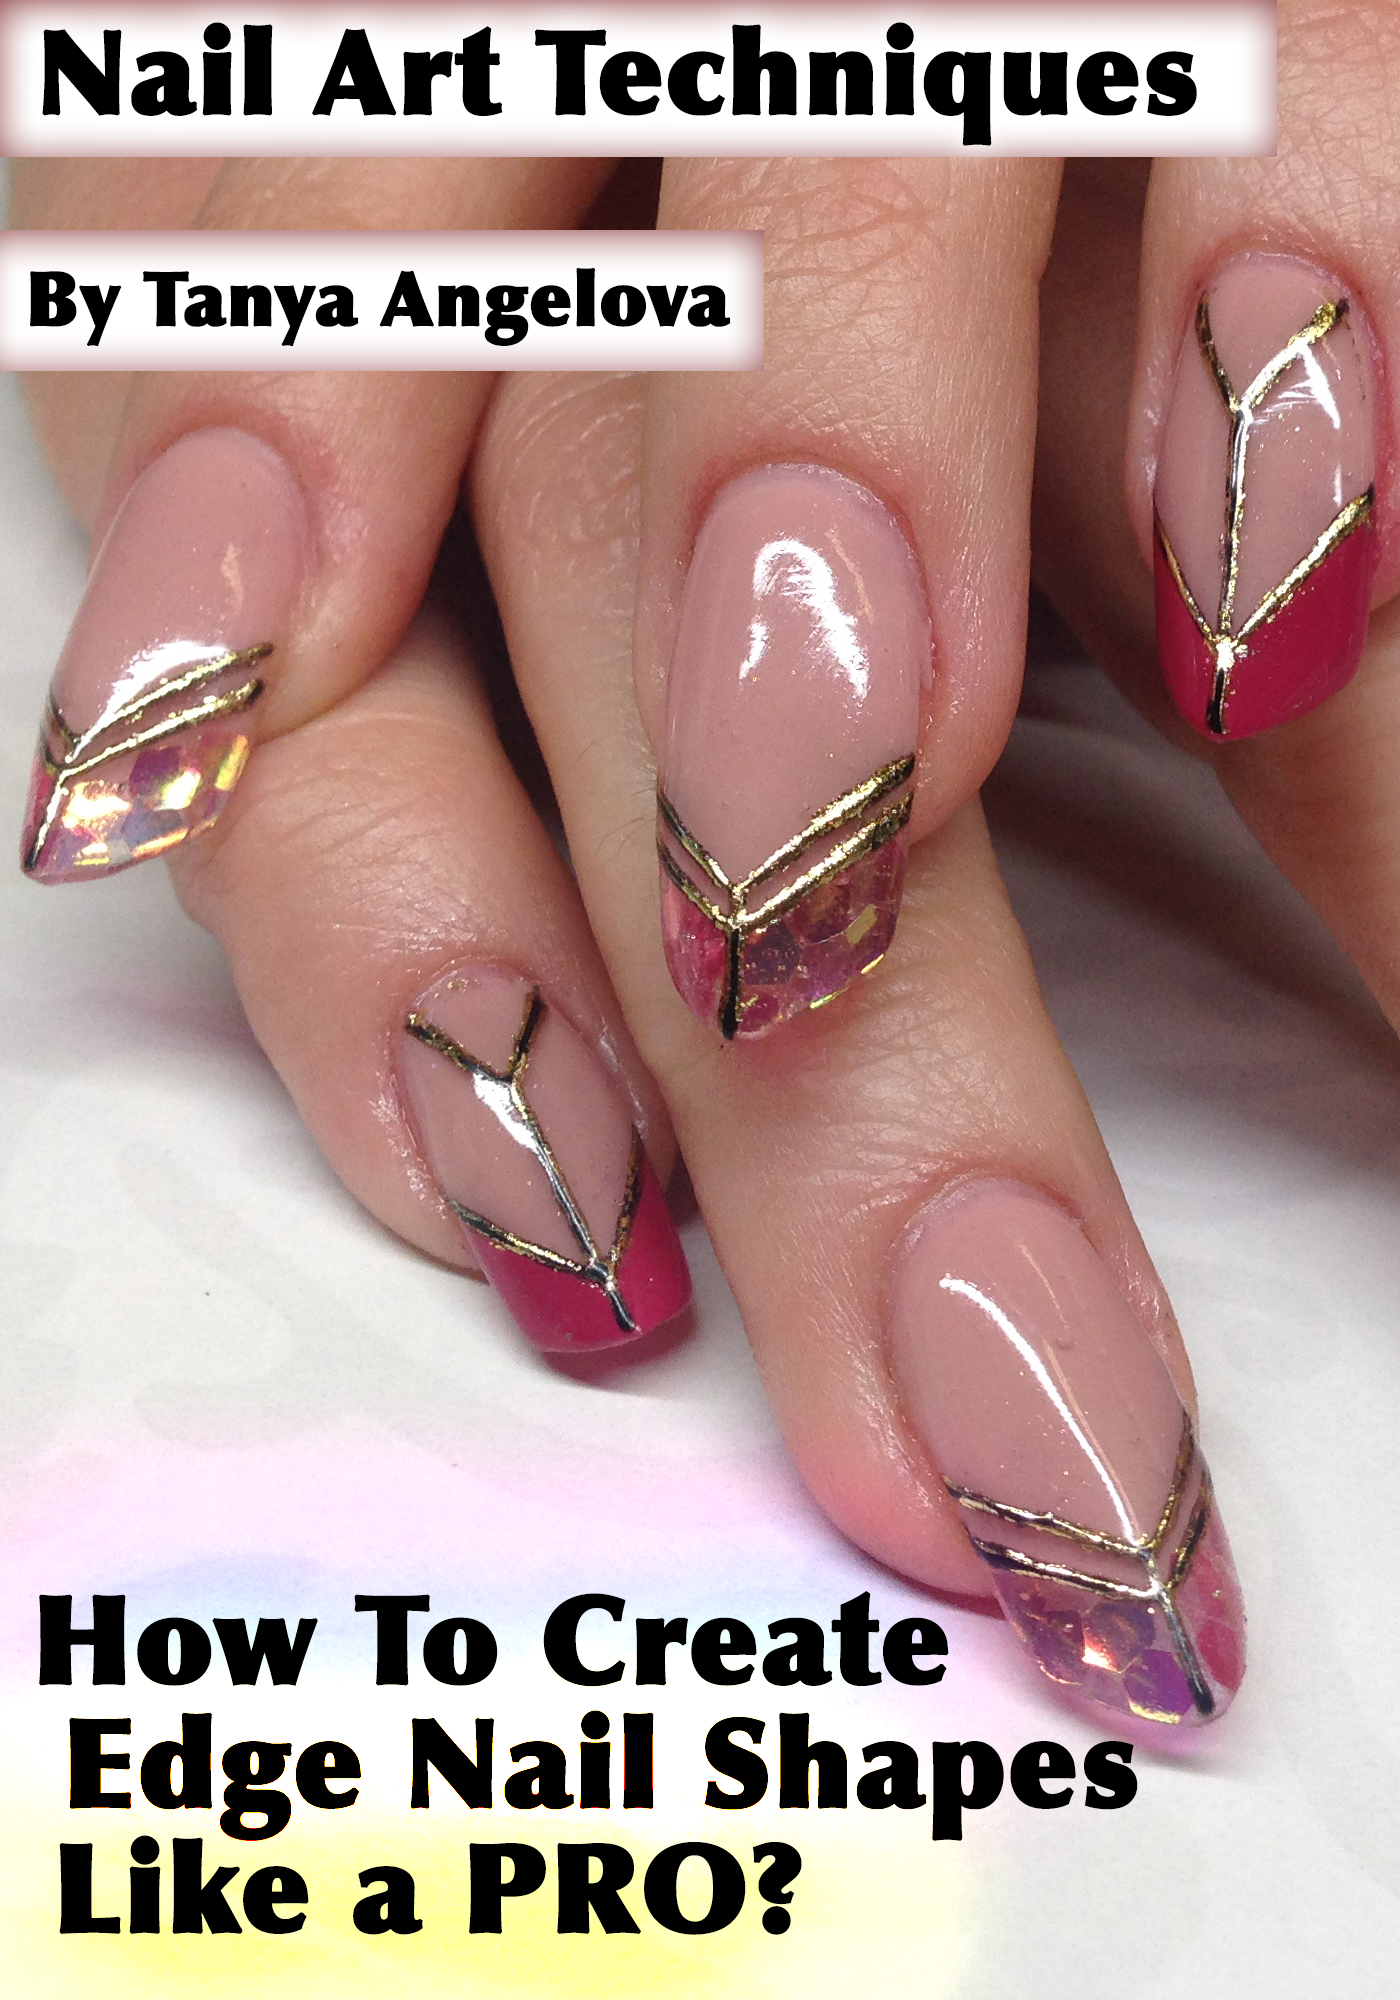 Smashwords Modern Nail Shapes How To Make Sti And Edge Uv Gel Extensions Like A Pro Book By Tanya Angelova Page 1